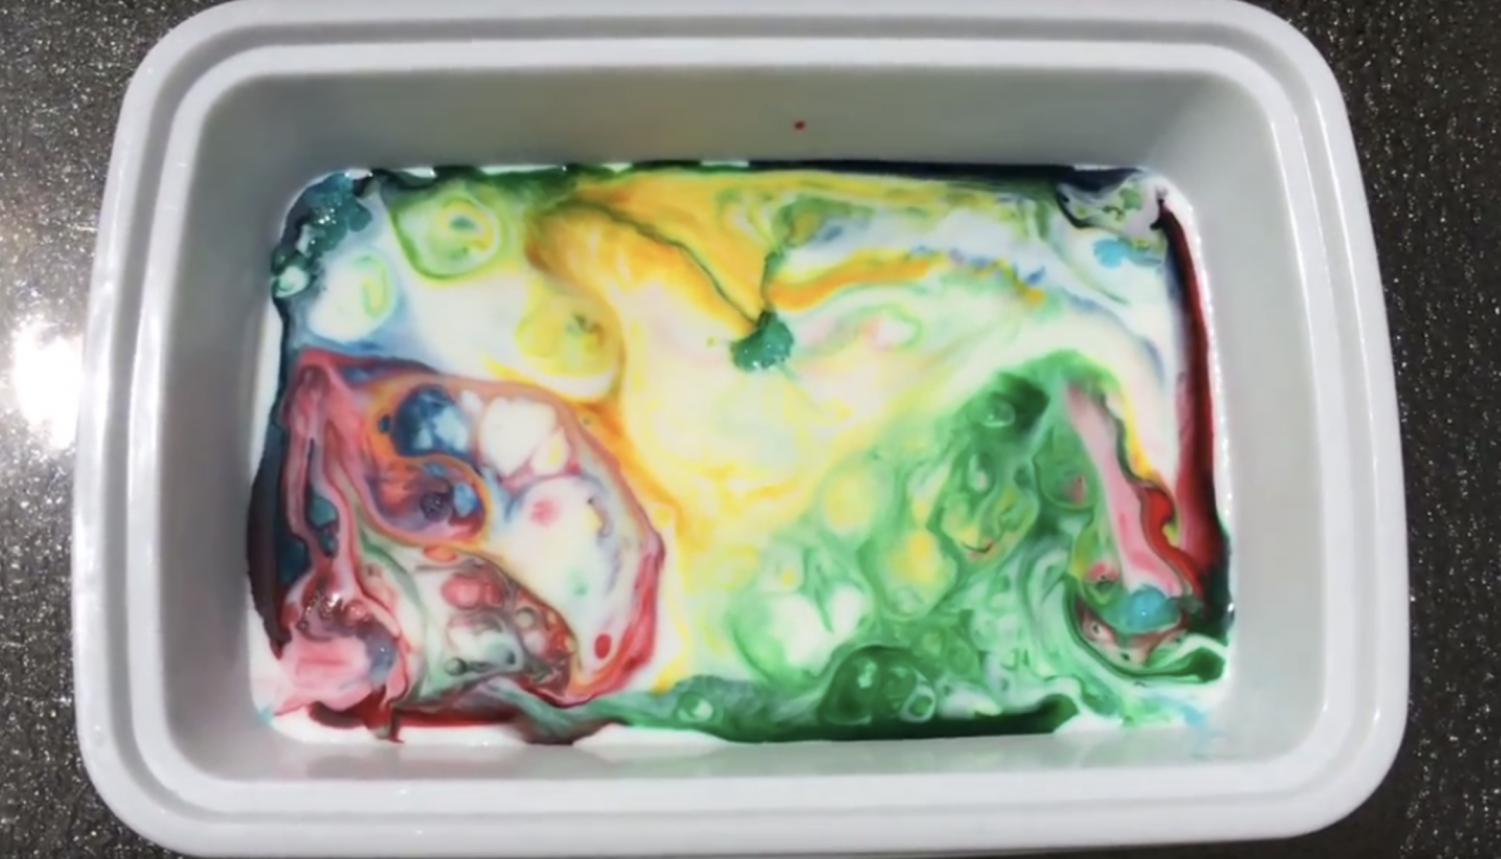 The final product of the Color Symphony science experiment.